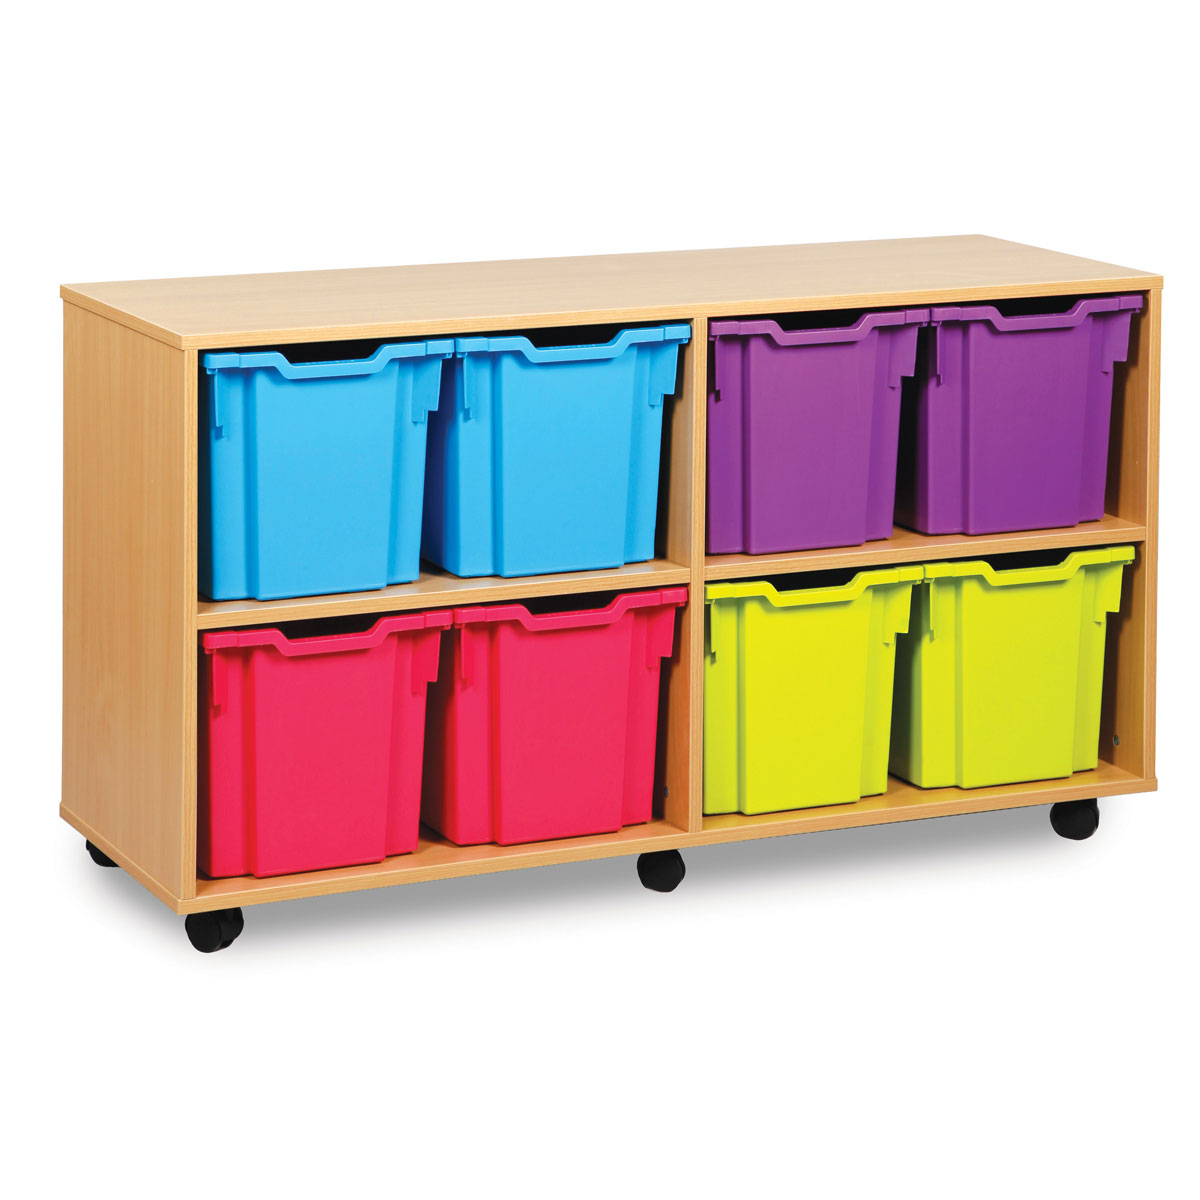 8 Jumbo Tray Storage Unit. Tap to expand  sc 1 st  Primary ICT & Buy 8 Jumbo Tray Storage Unit | Primary ICT Shop for Primary Schools ...